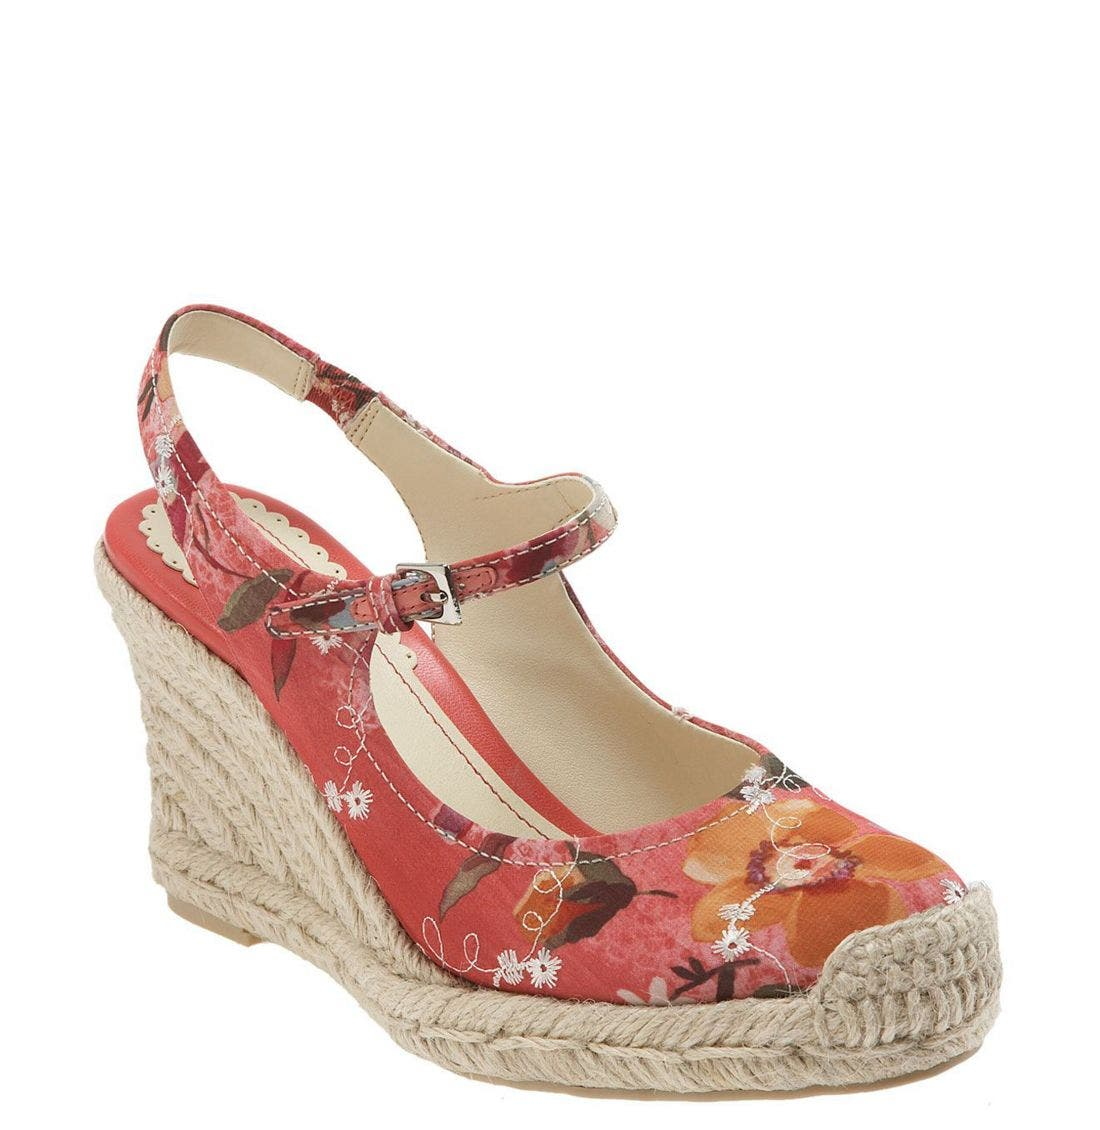 Alternate Image 1 Selected - Franco Sarto 'Queen' Espadrille